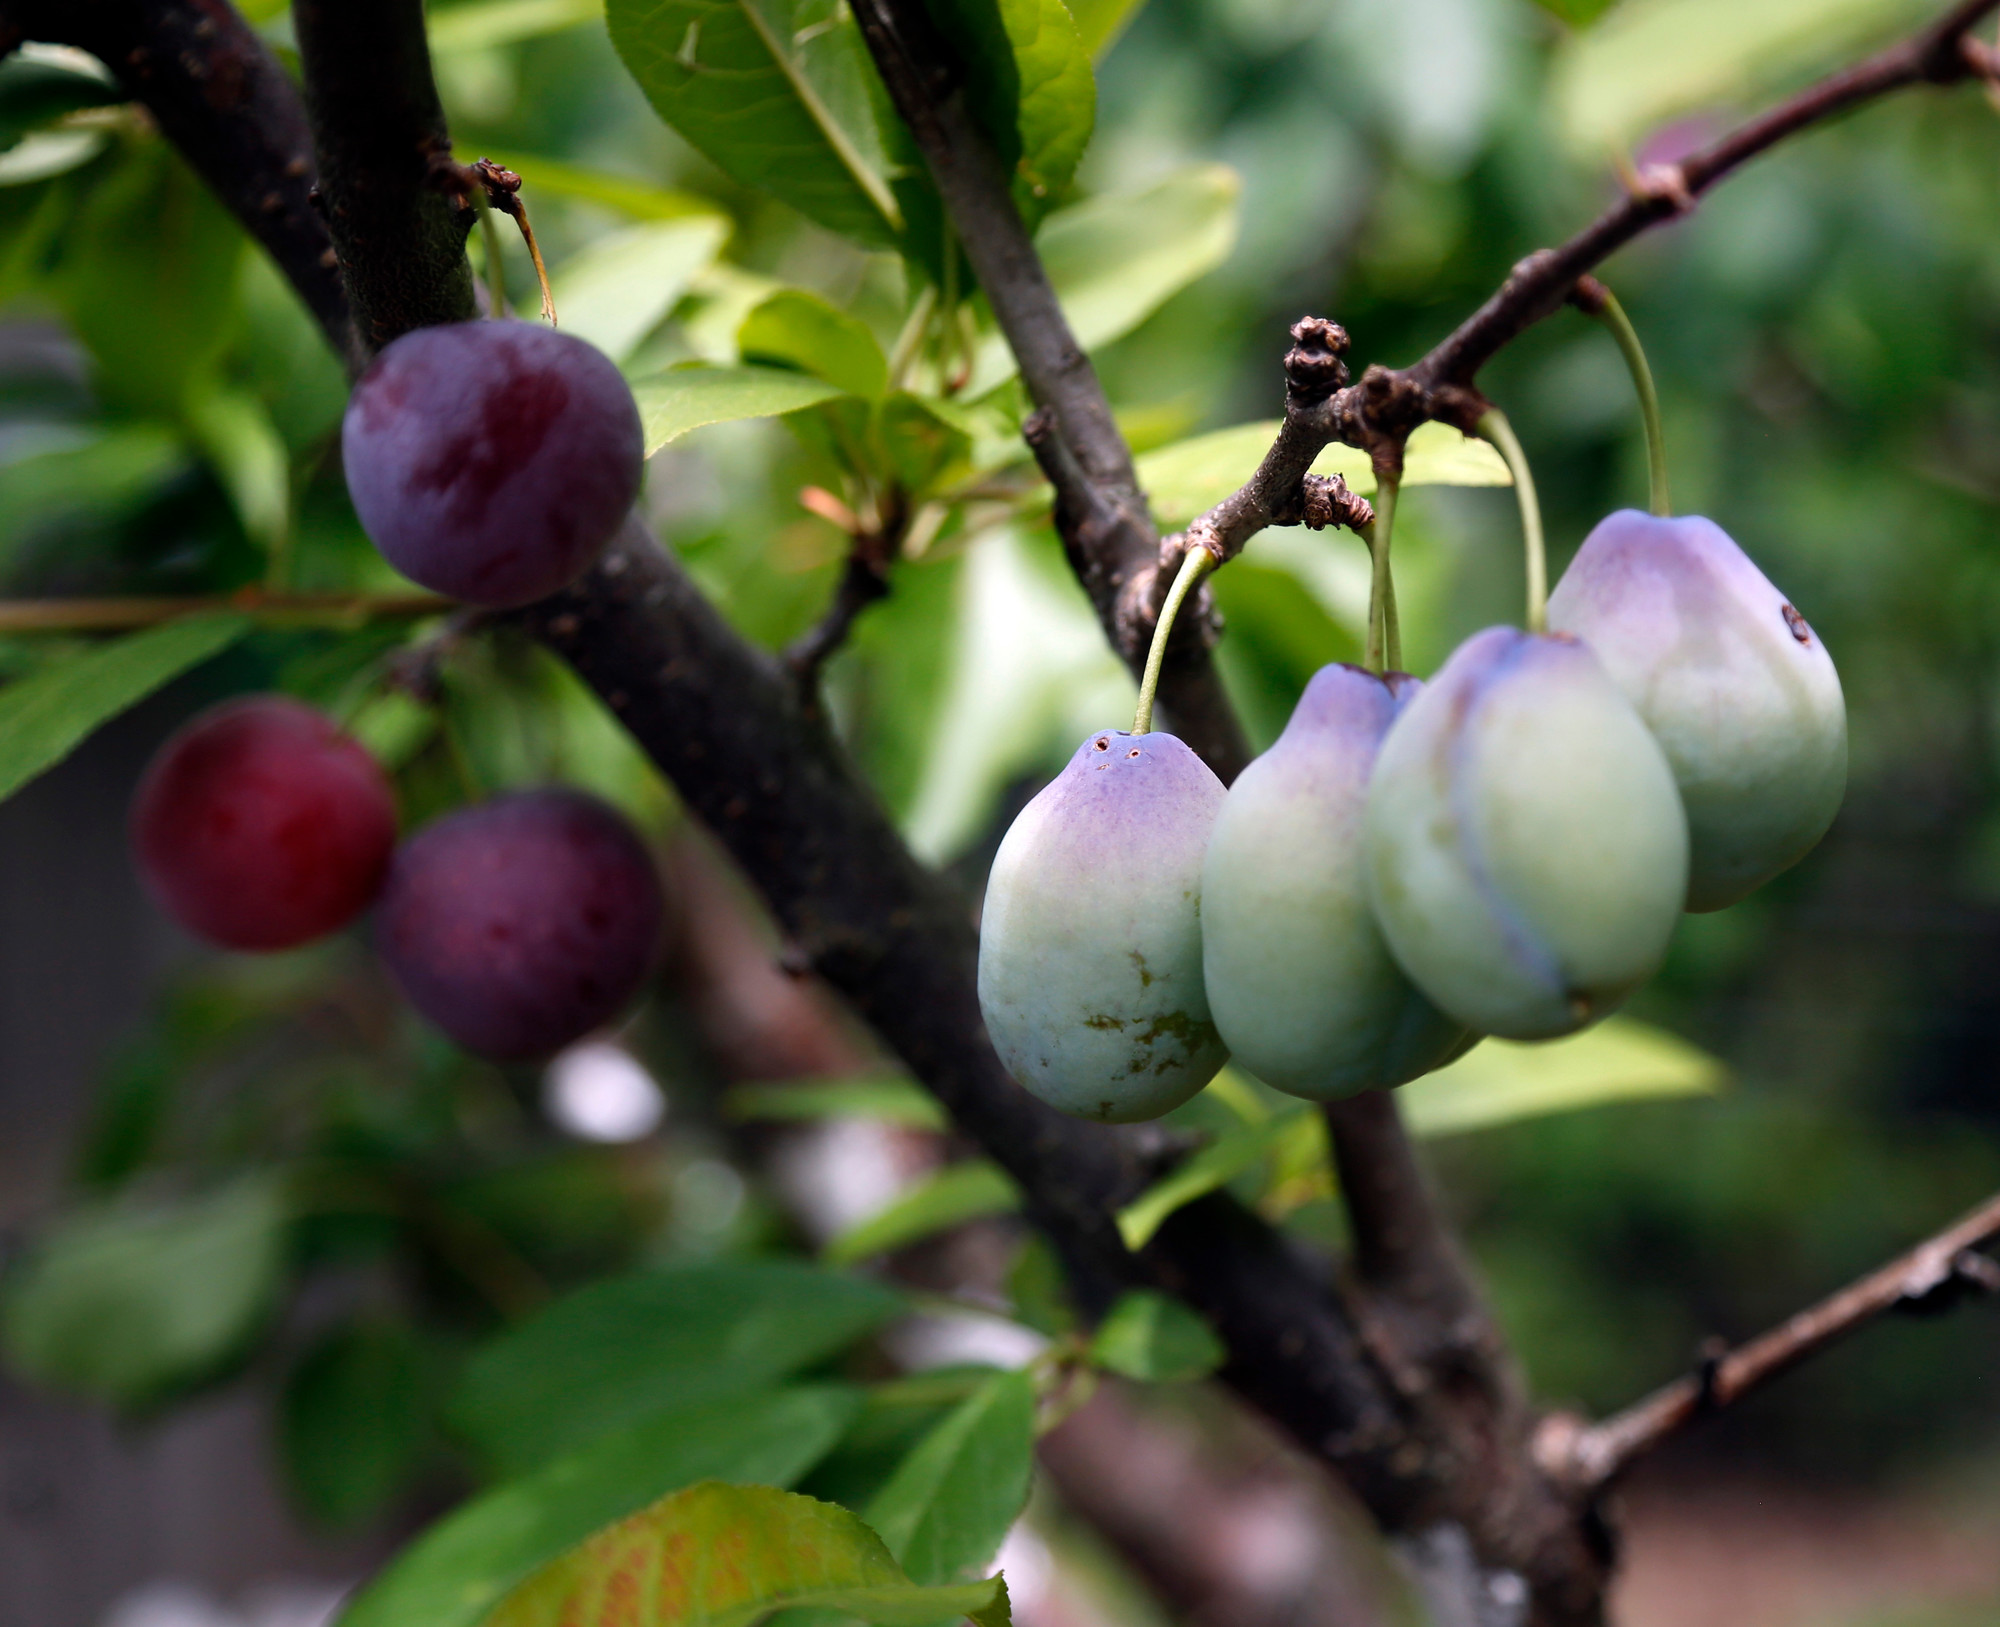 Many fruits stem from artist 39 s grafts the sumter item - Graft plum tree tips ...